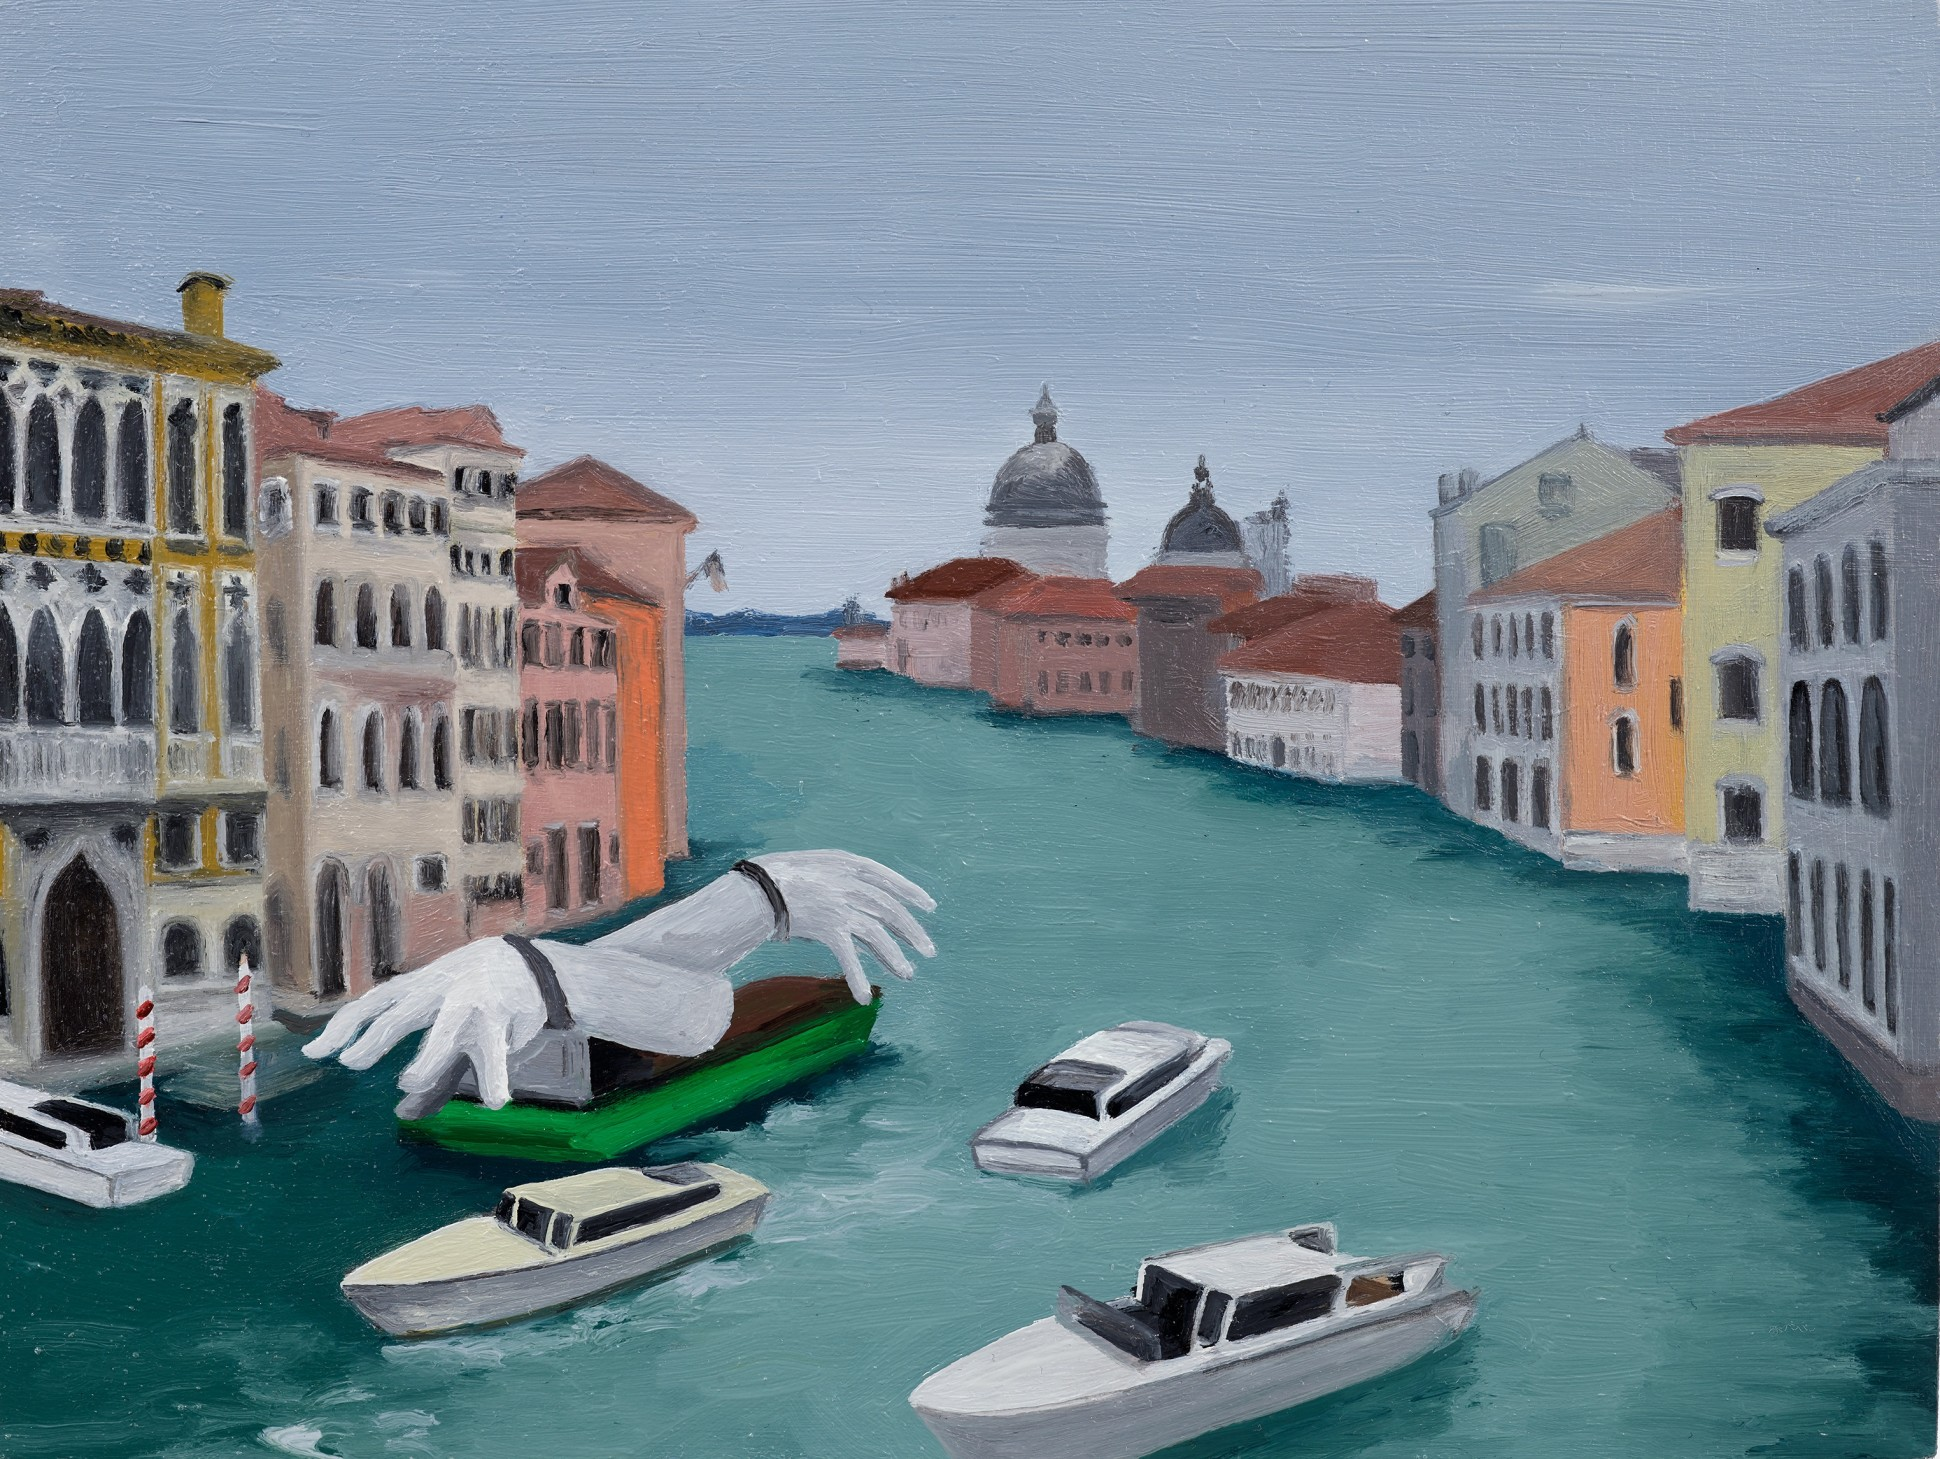 Delivery Down The Grand Canal, 2021 Oil on panel 15.5 x 20.5 cm. / 6 x 8 in.